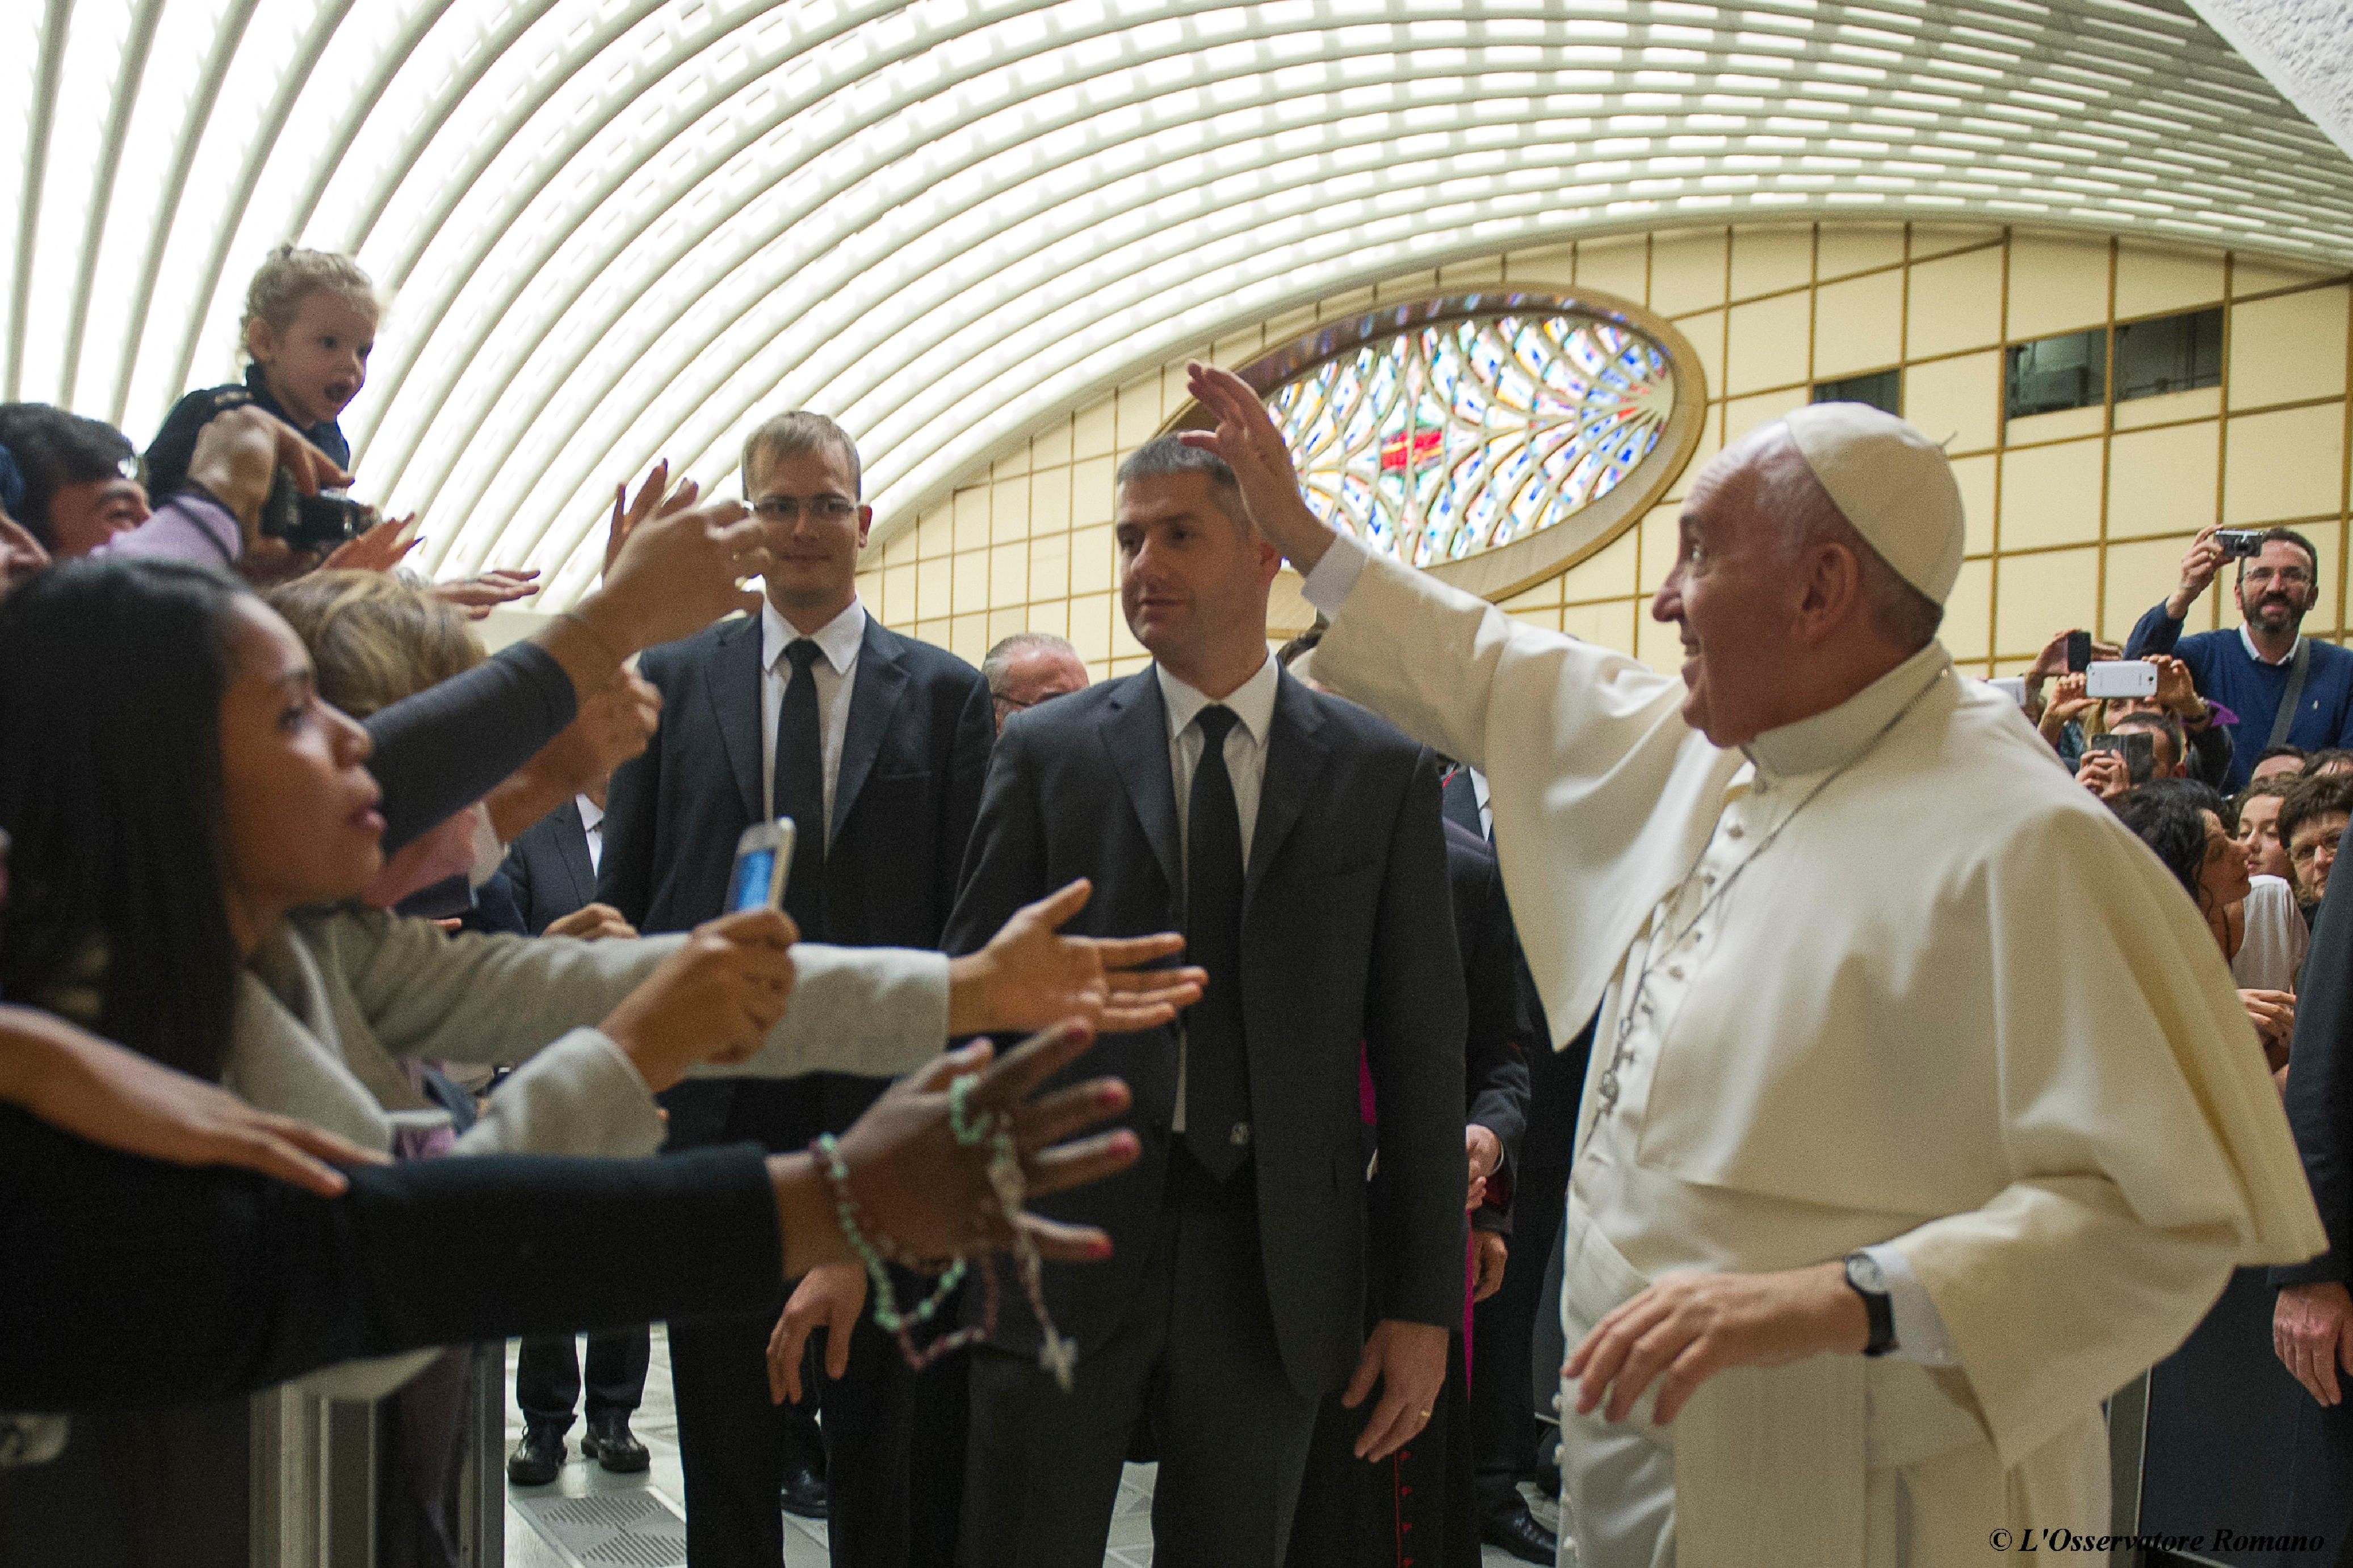 Papal Audience to Christian Union of Italian Business Executives (UCID)